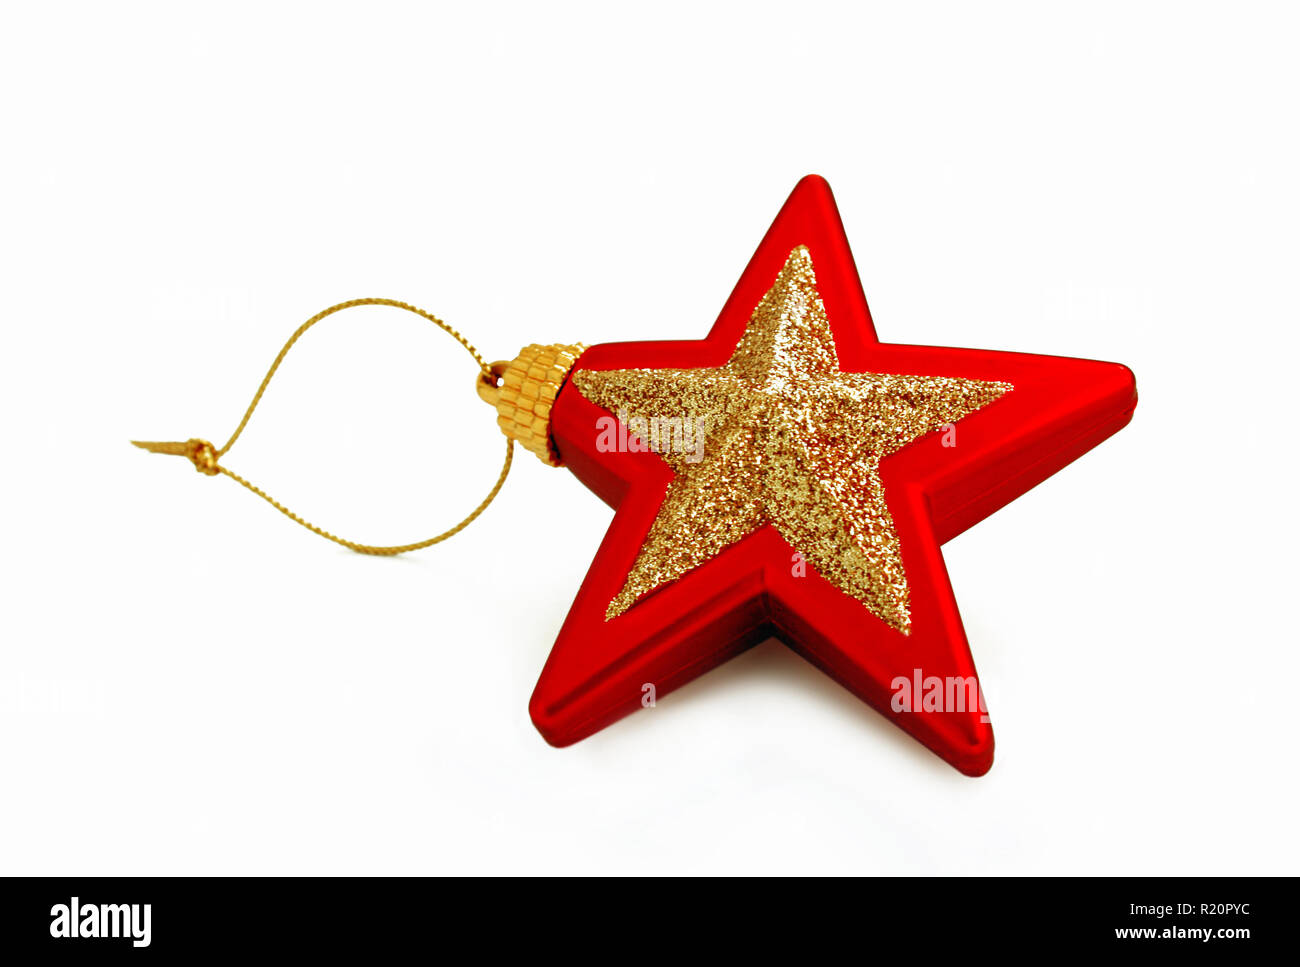 red and golden star isolated on white - Stock Image